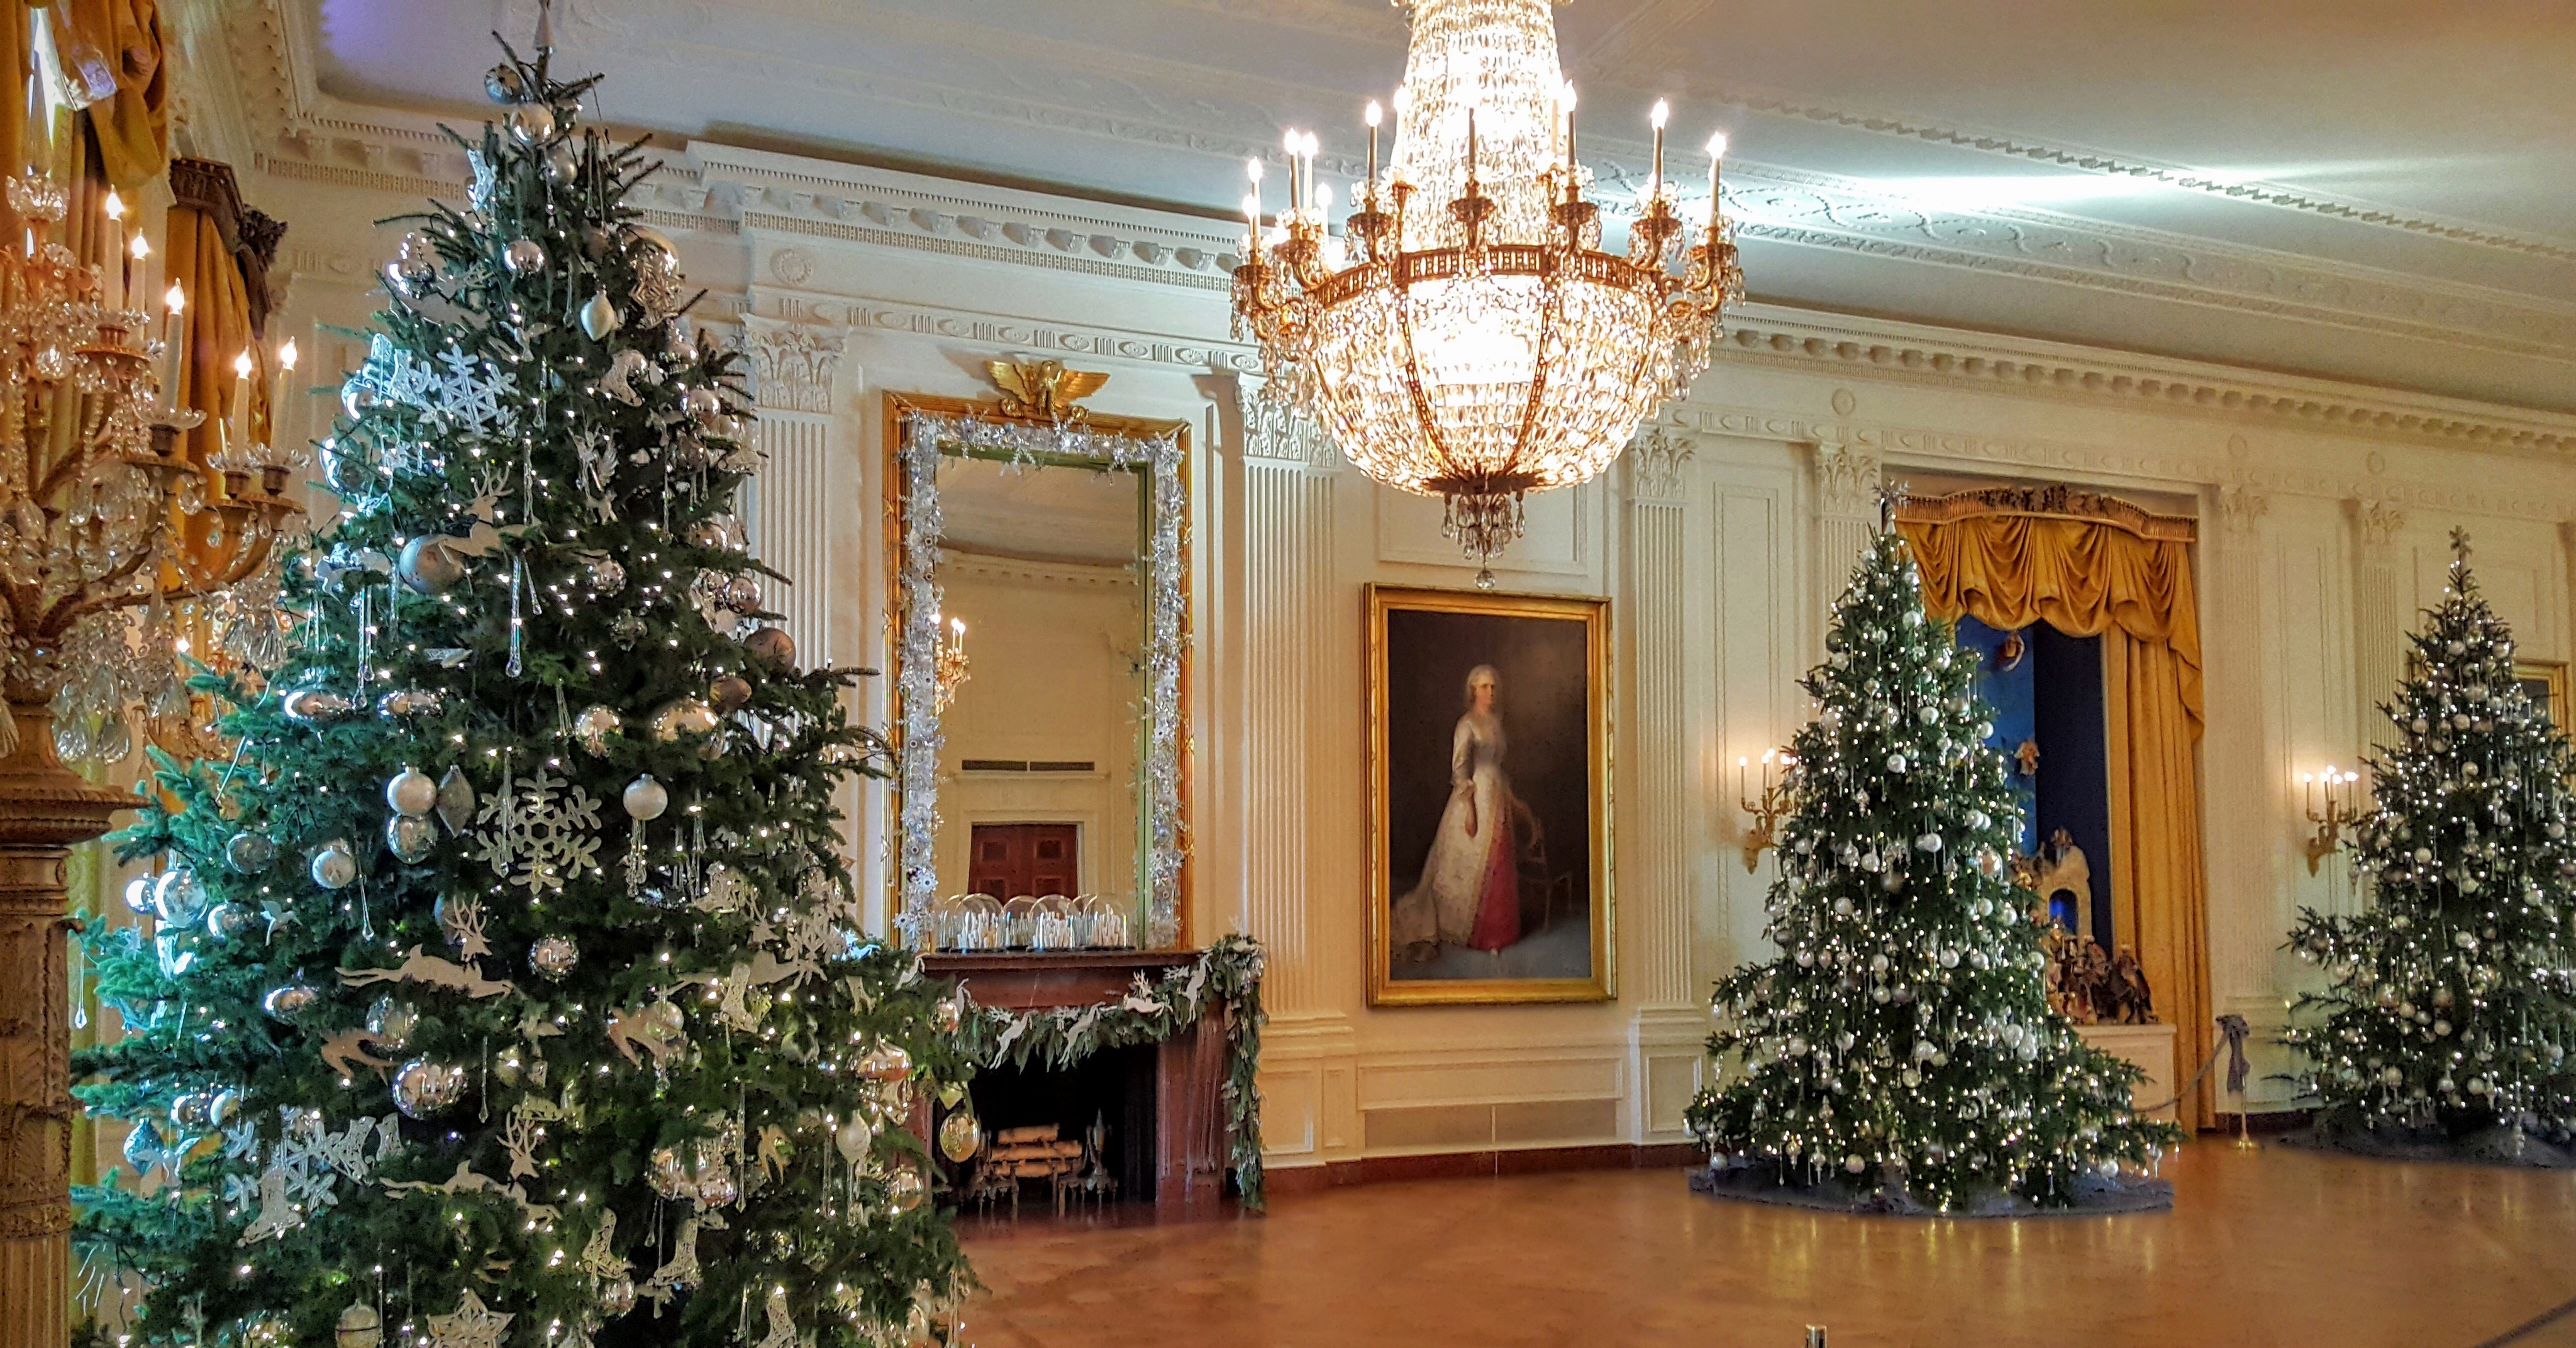 White house christmas ornaments by year - 2015 12 20 1450635522 8446446 Img_2952 Jpg